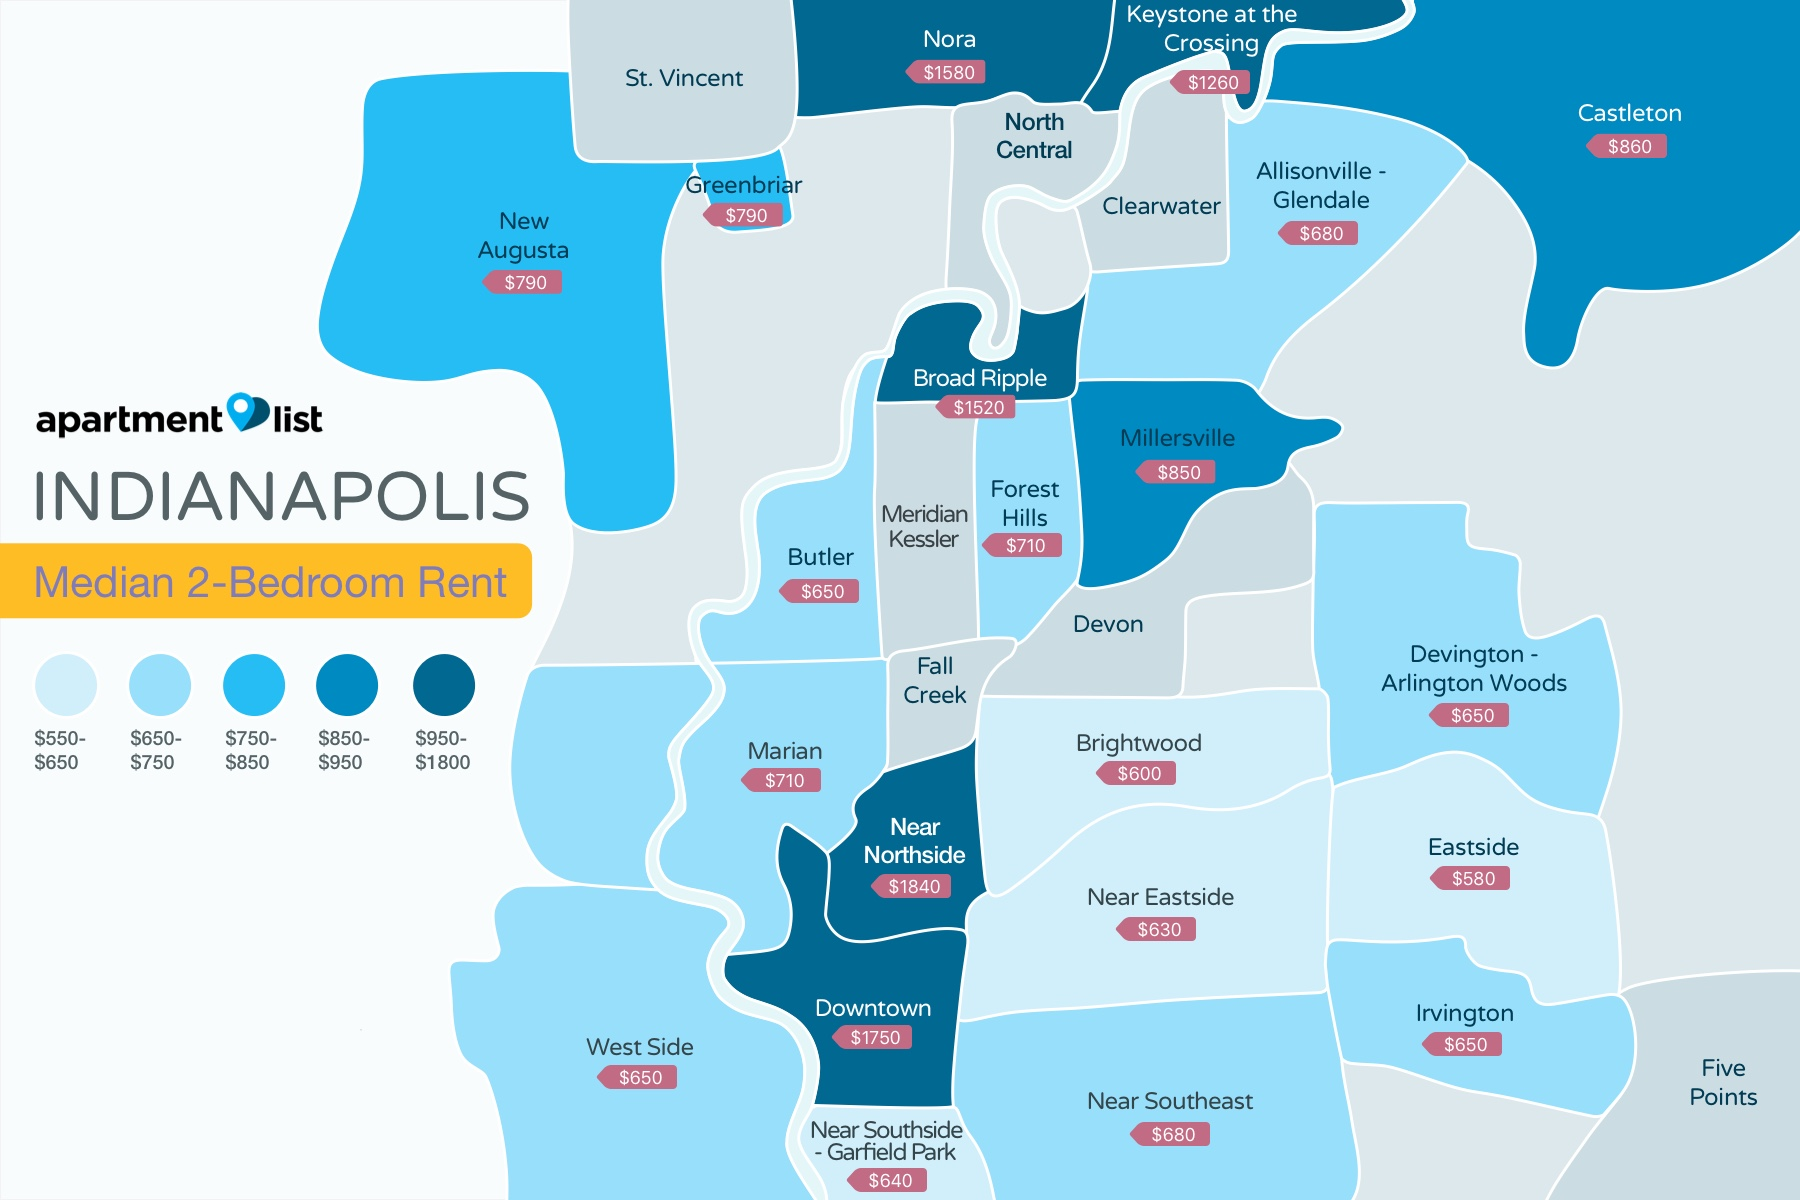 Indianapolis Neighborhood Price Map